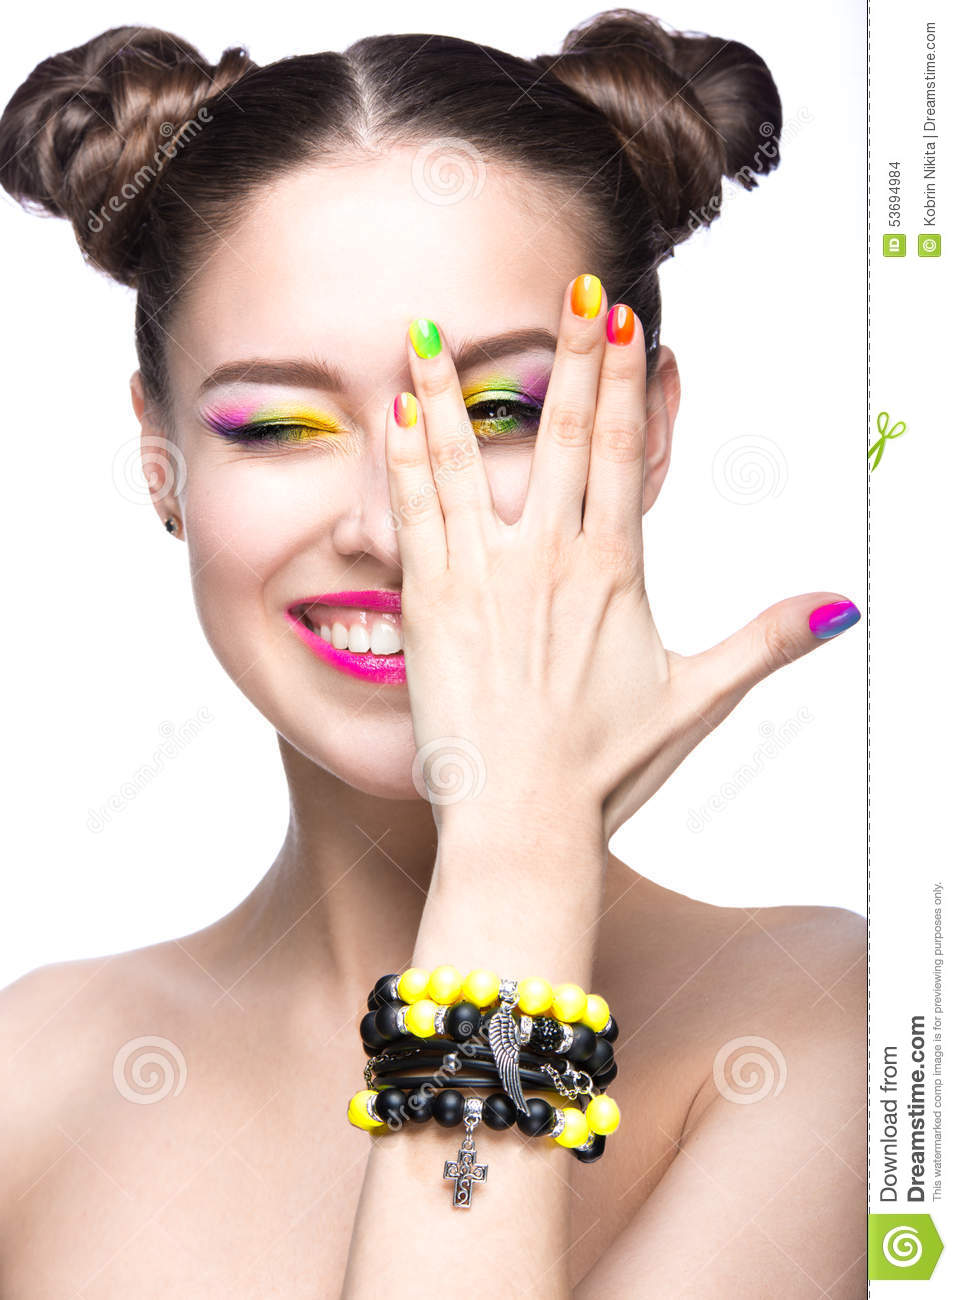 beautiful-model-girl-bright-colored-makeup-nail-polish-summer-image ...